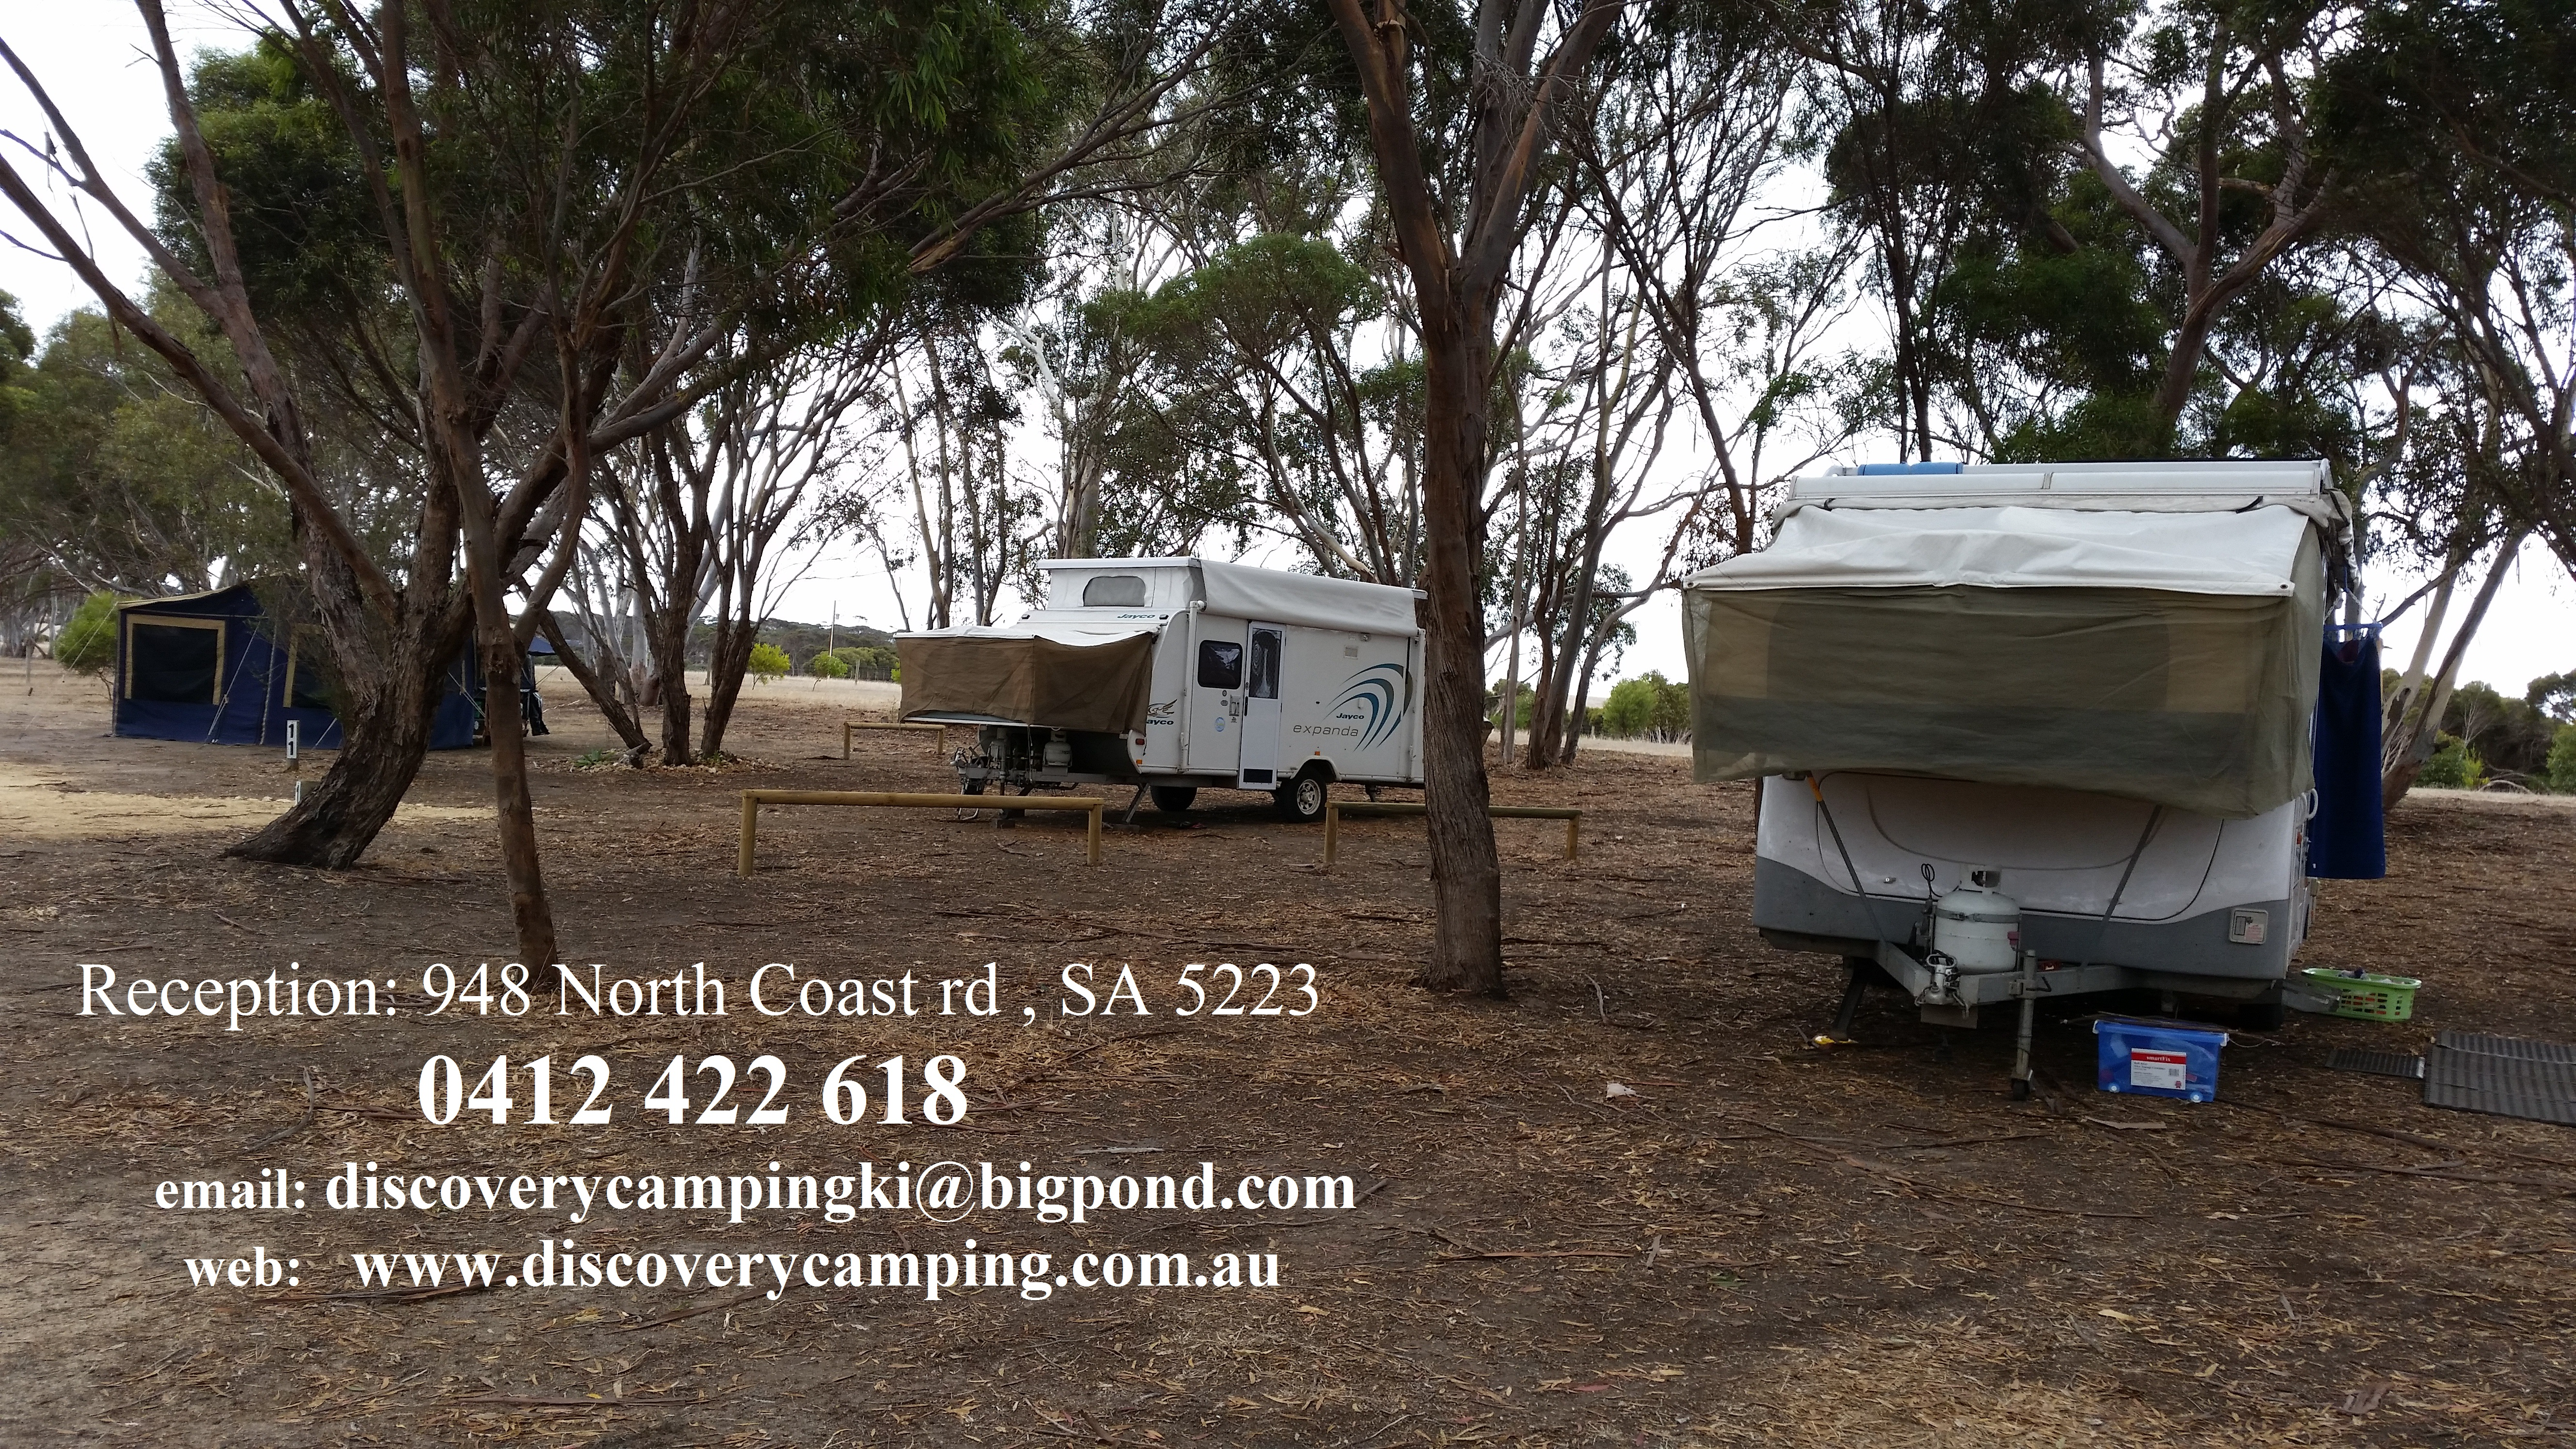 Discovery Lagoon  Caravan  Camping Grounds - South Australia Travel